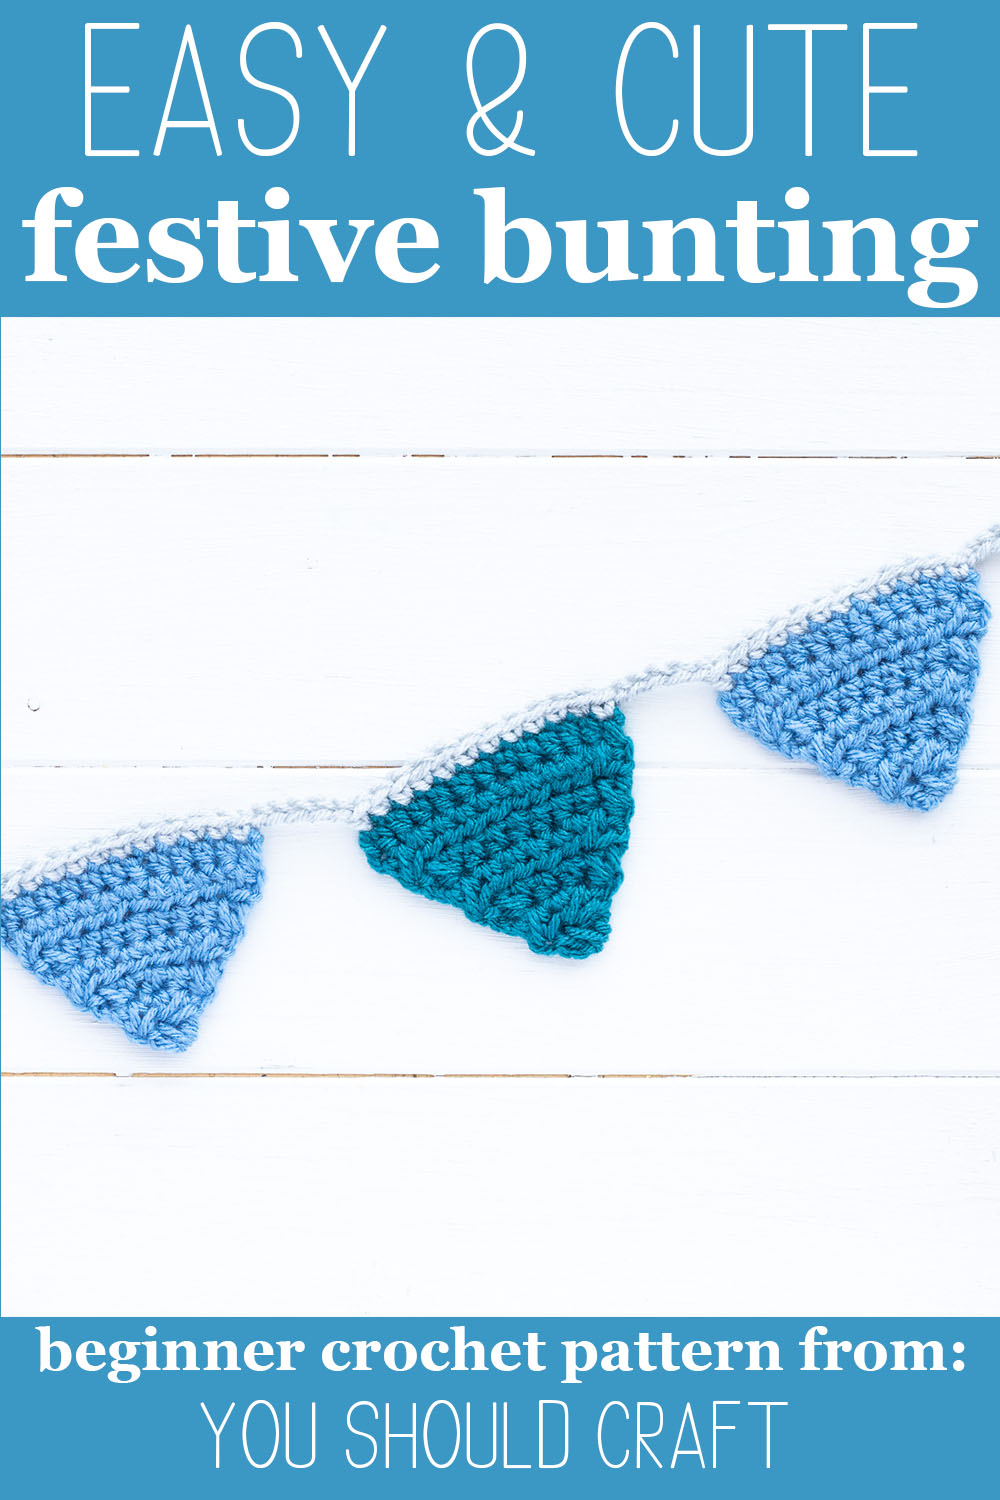 """blue crocheted bunting on a white wooden background with text """"easy & cute festive bunting - beginner crochet pattern from: you should craft"""""""